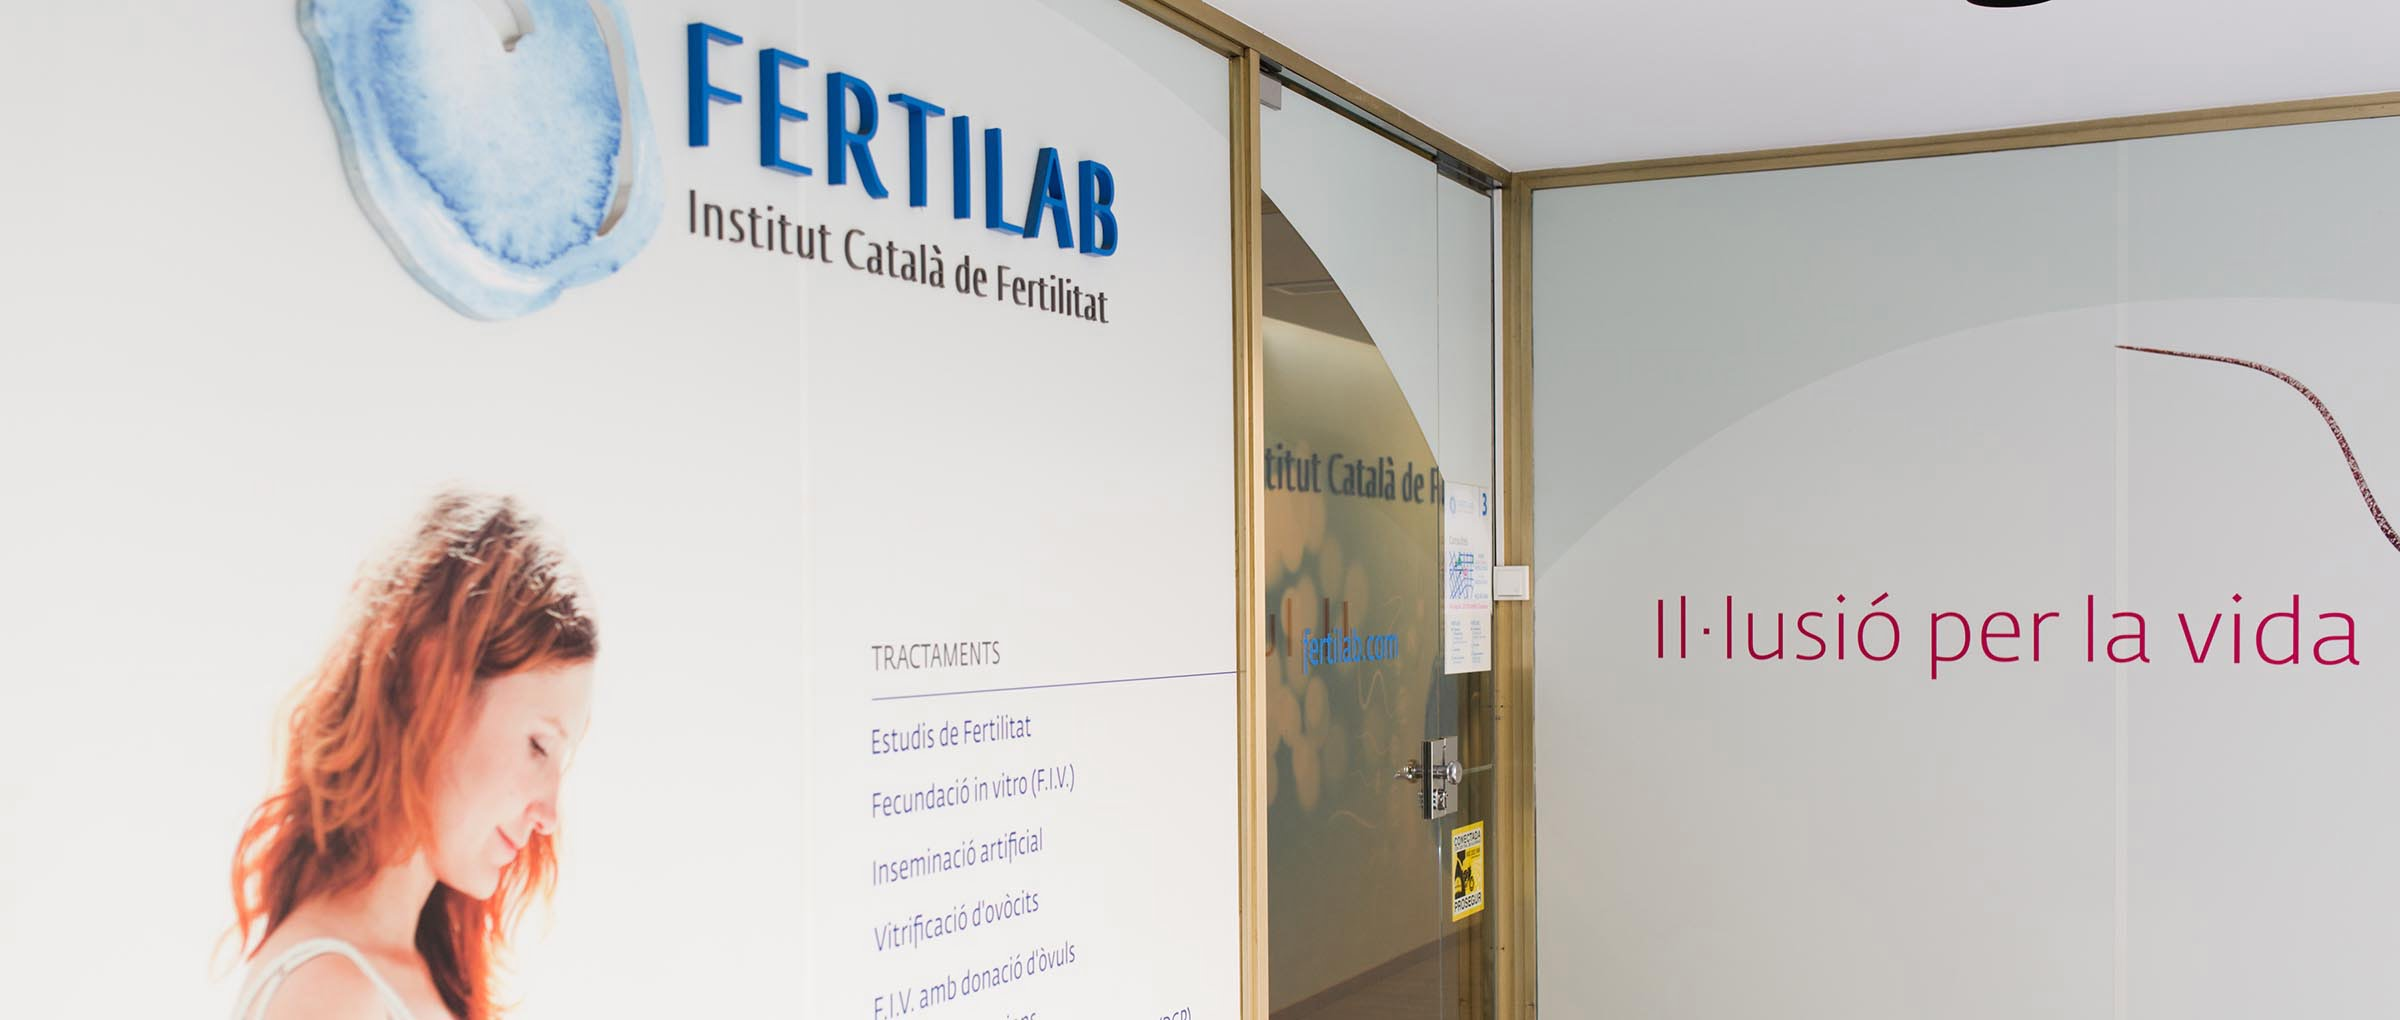 Fertilab entrance to the clinic